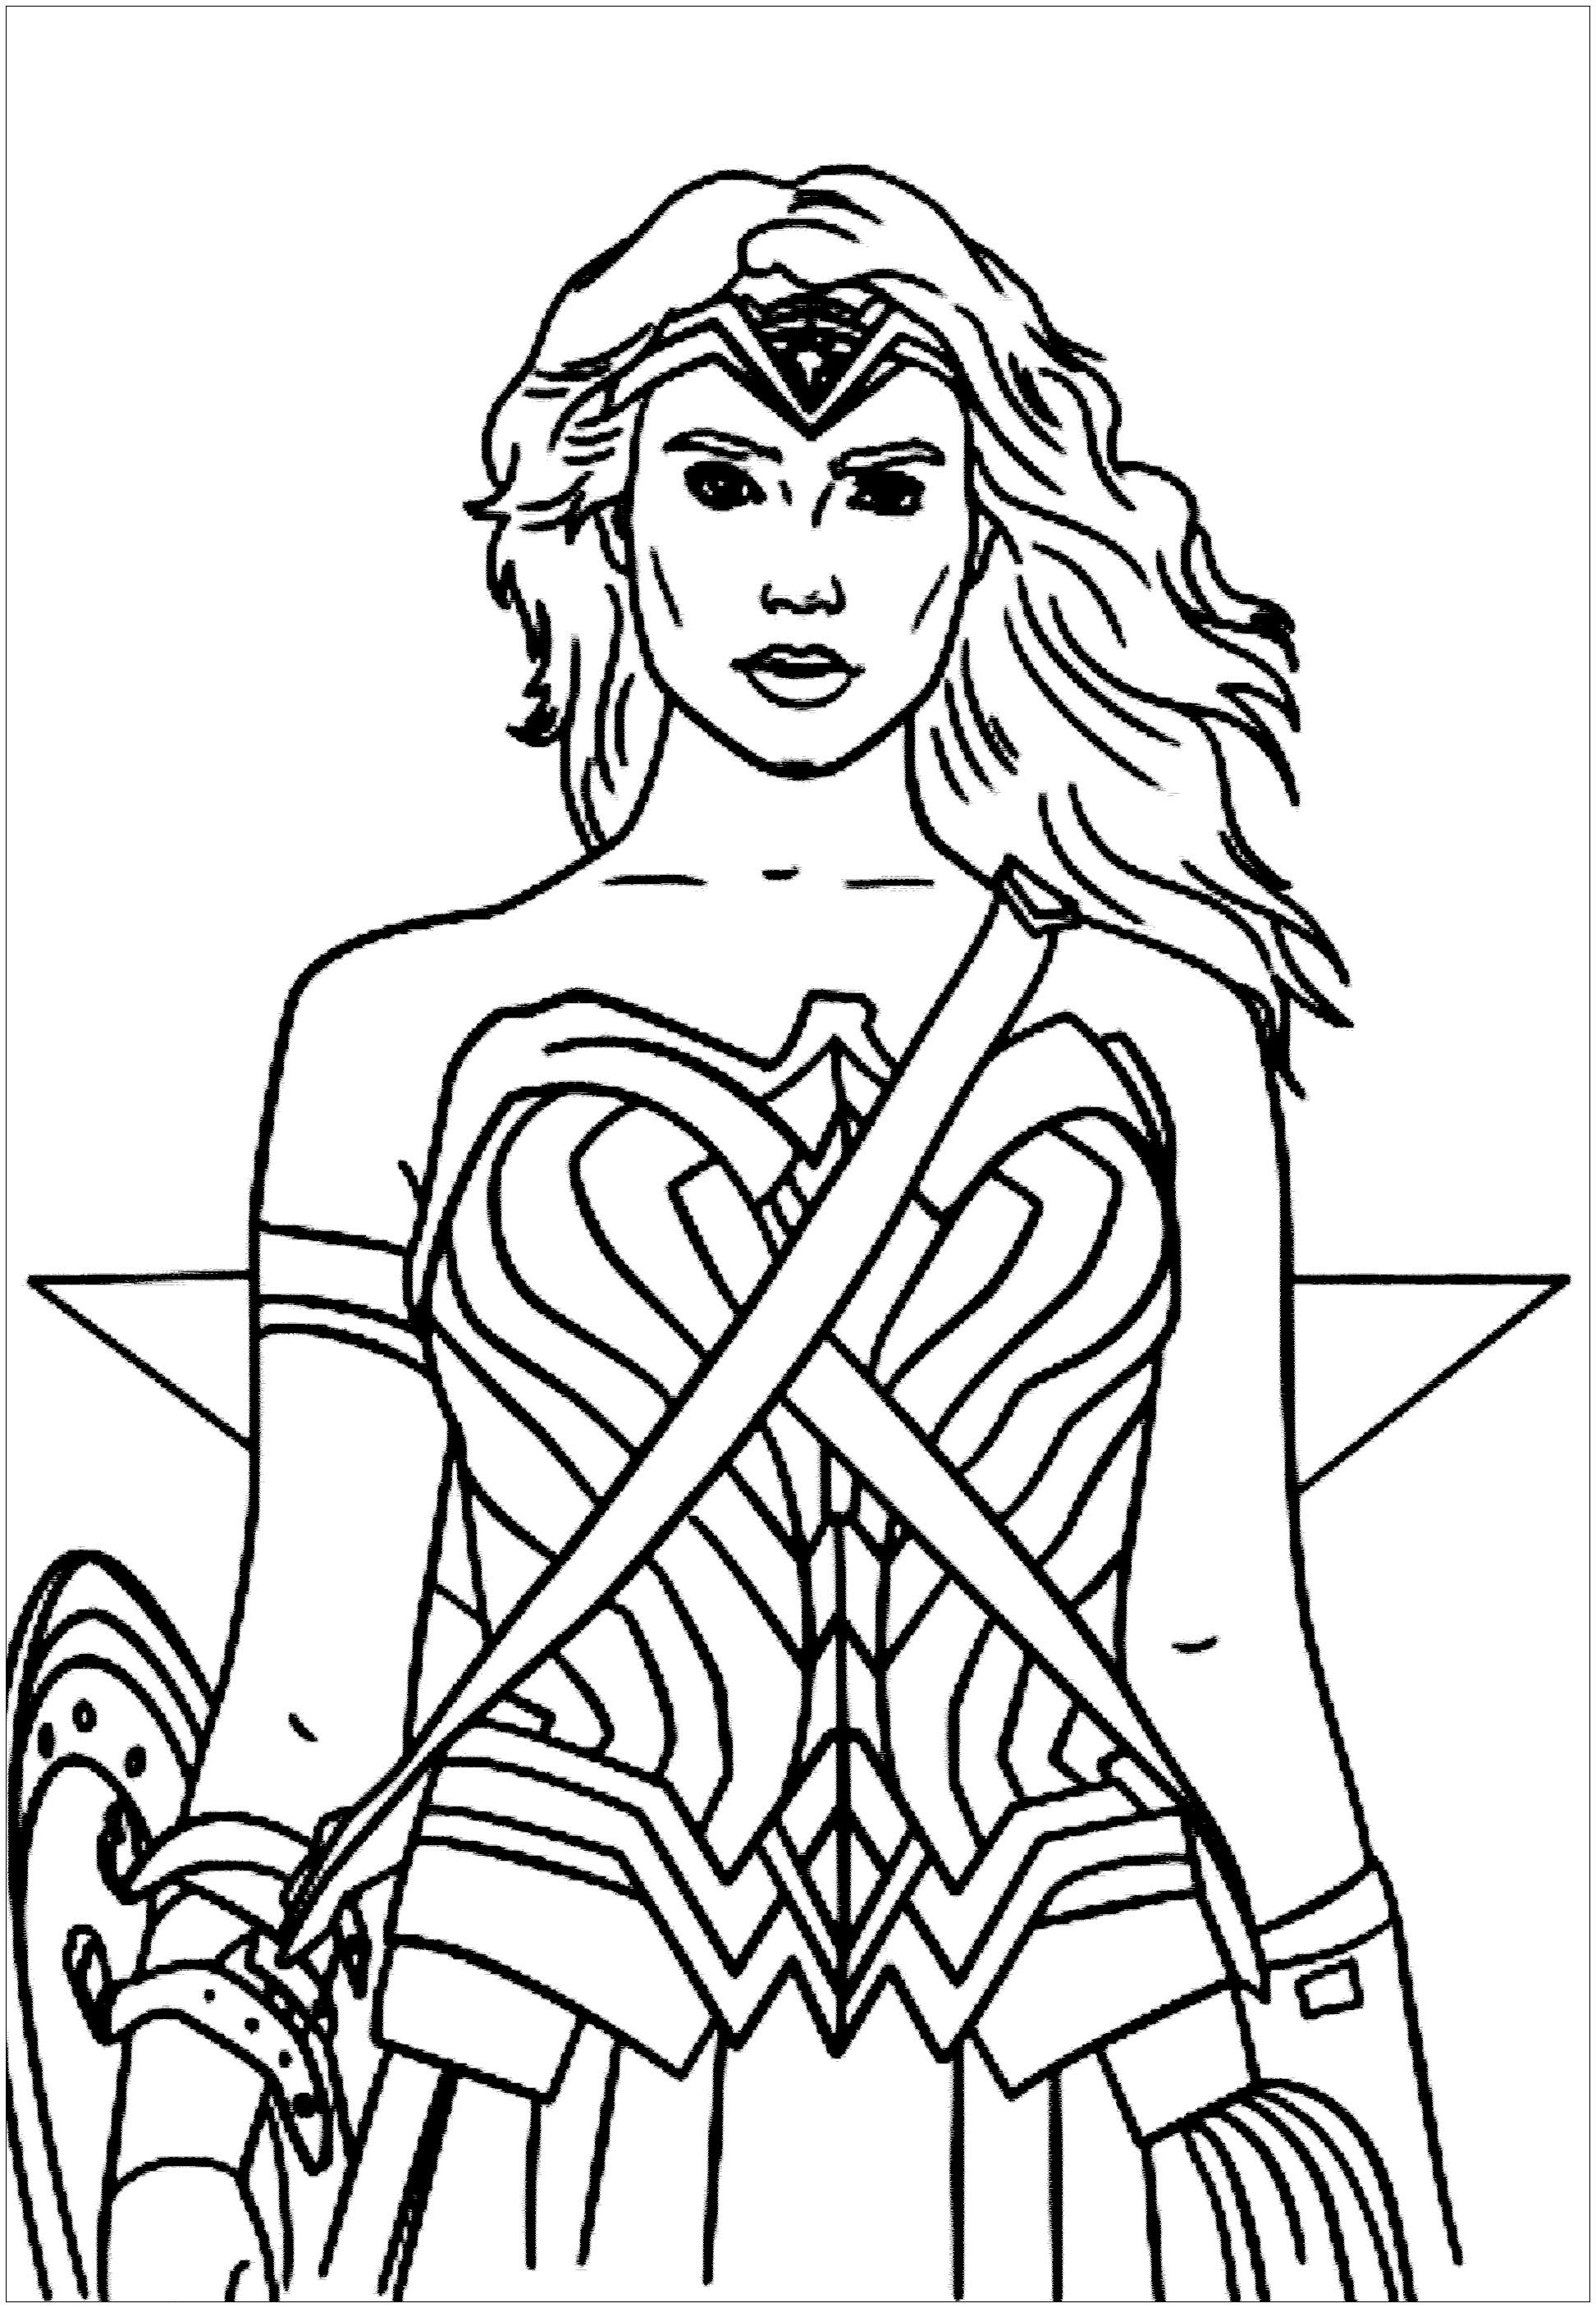 Wonder Woman Interprétée - Coloriage Wonder Woman intérieur Coloriage Ralph La Casse